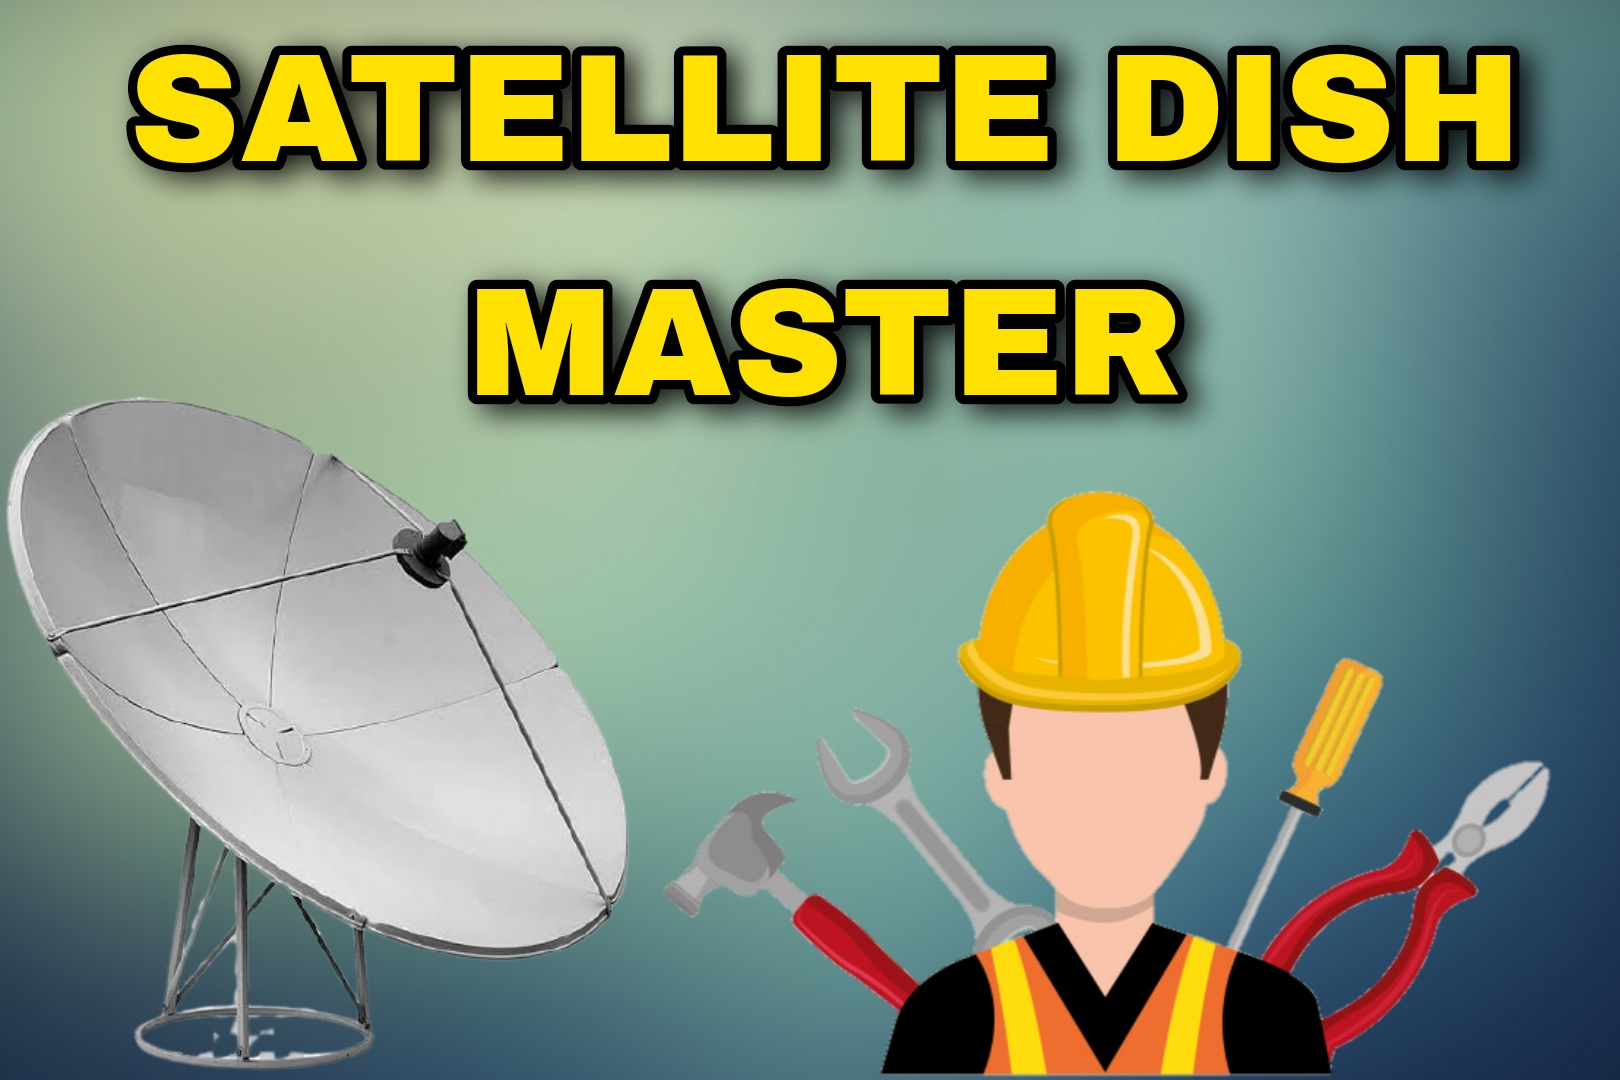 DISH SETTING TECHNICIAN ADDERS CITY AREA CONTACT NUMBER